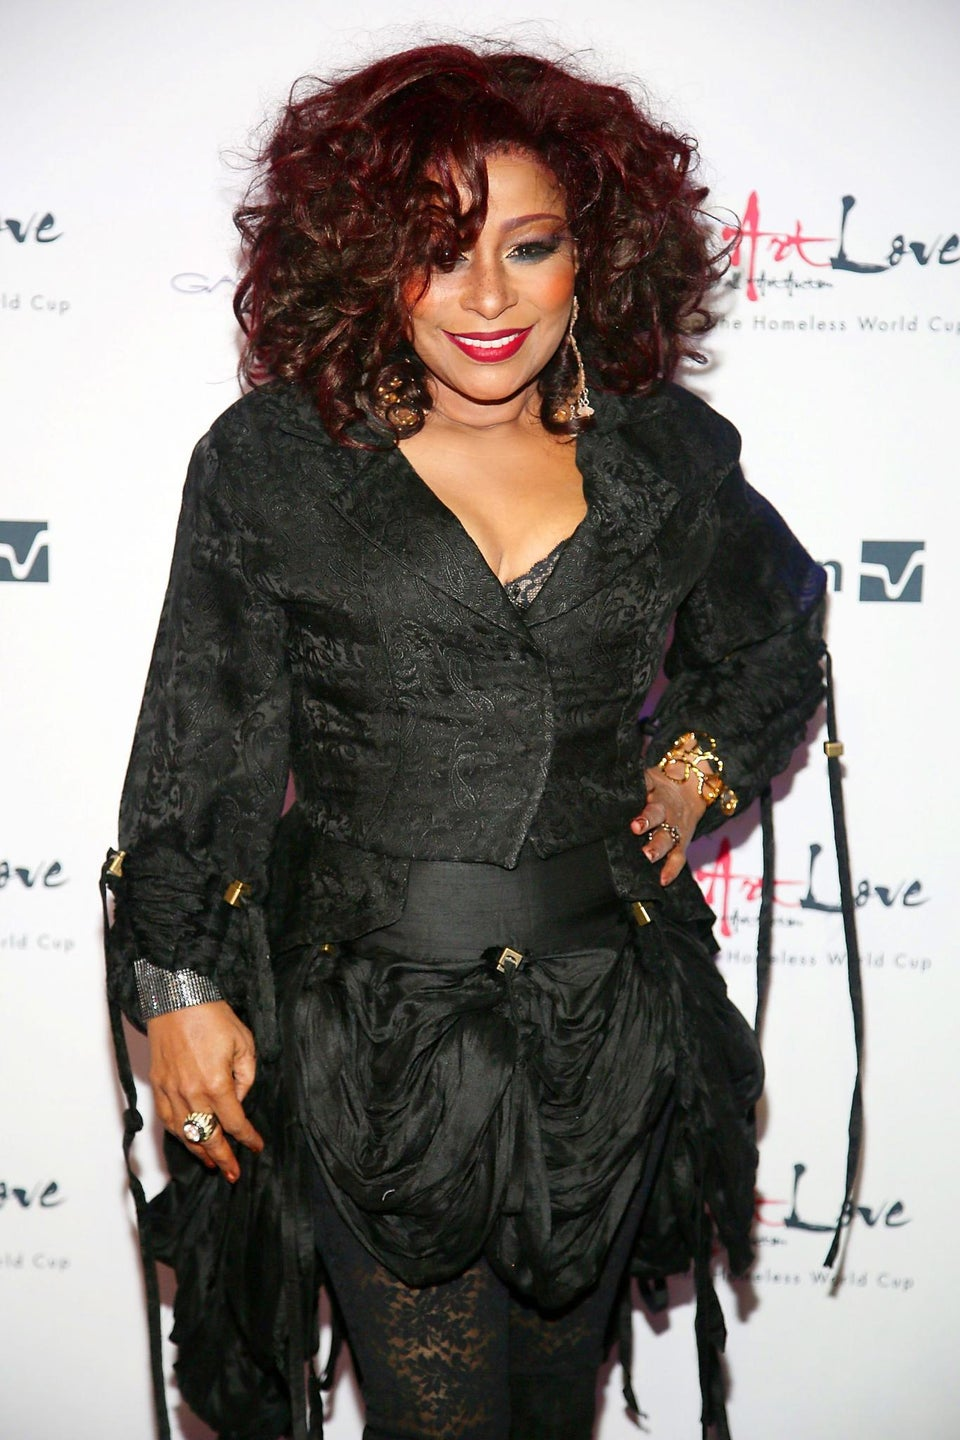 Chicago to Honor Chaka Khan with Street and Day